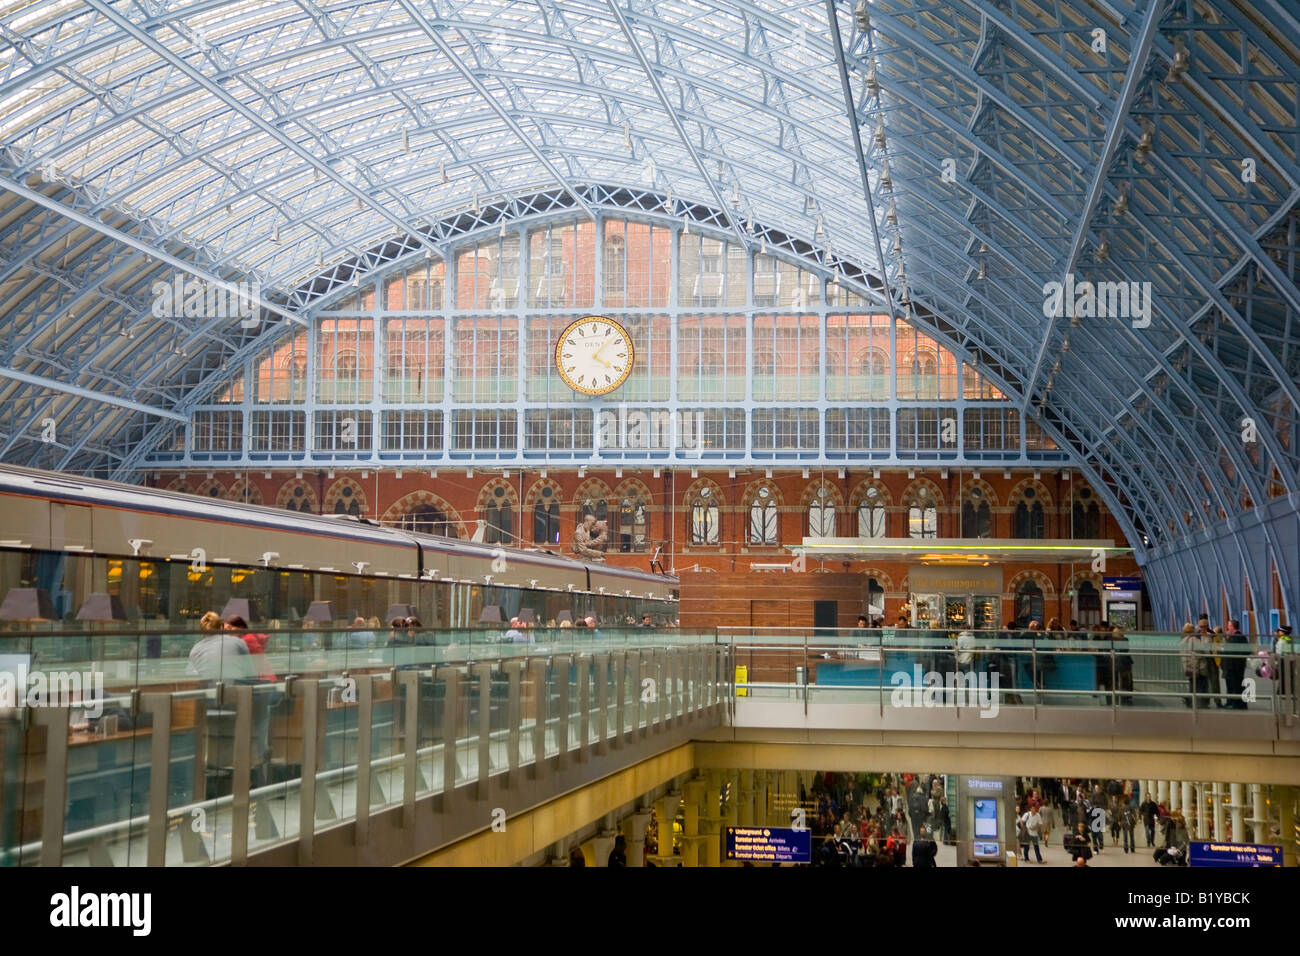 Interior showing the roof and clock in the rebuilt St Pancras Railway Station London England - Stock Image